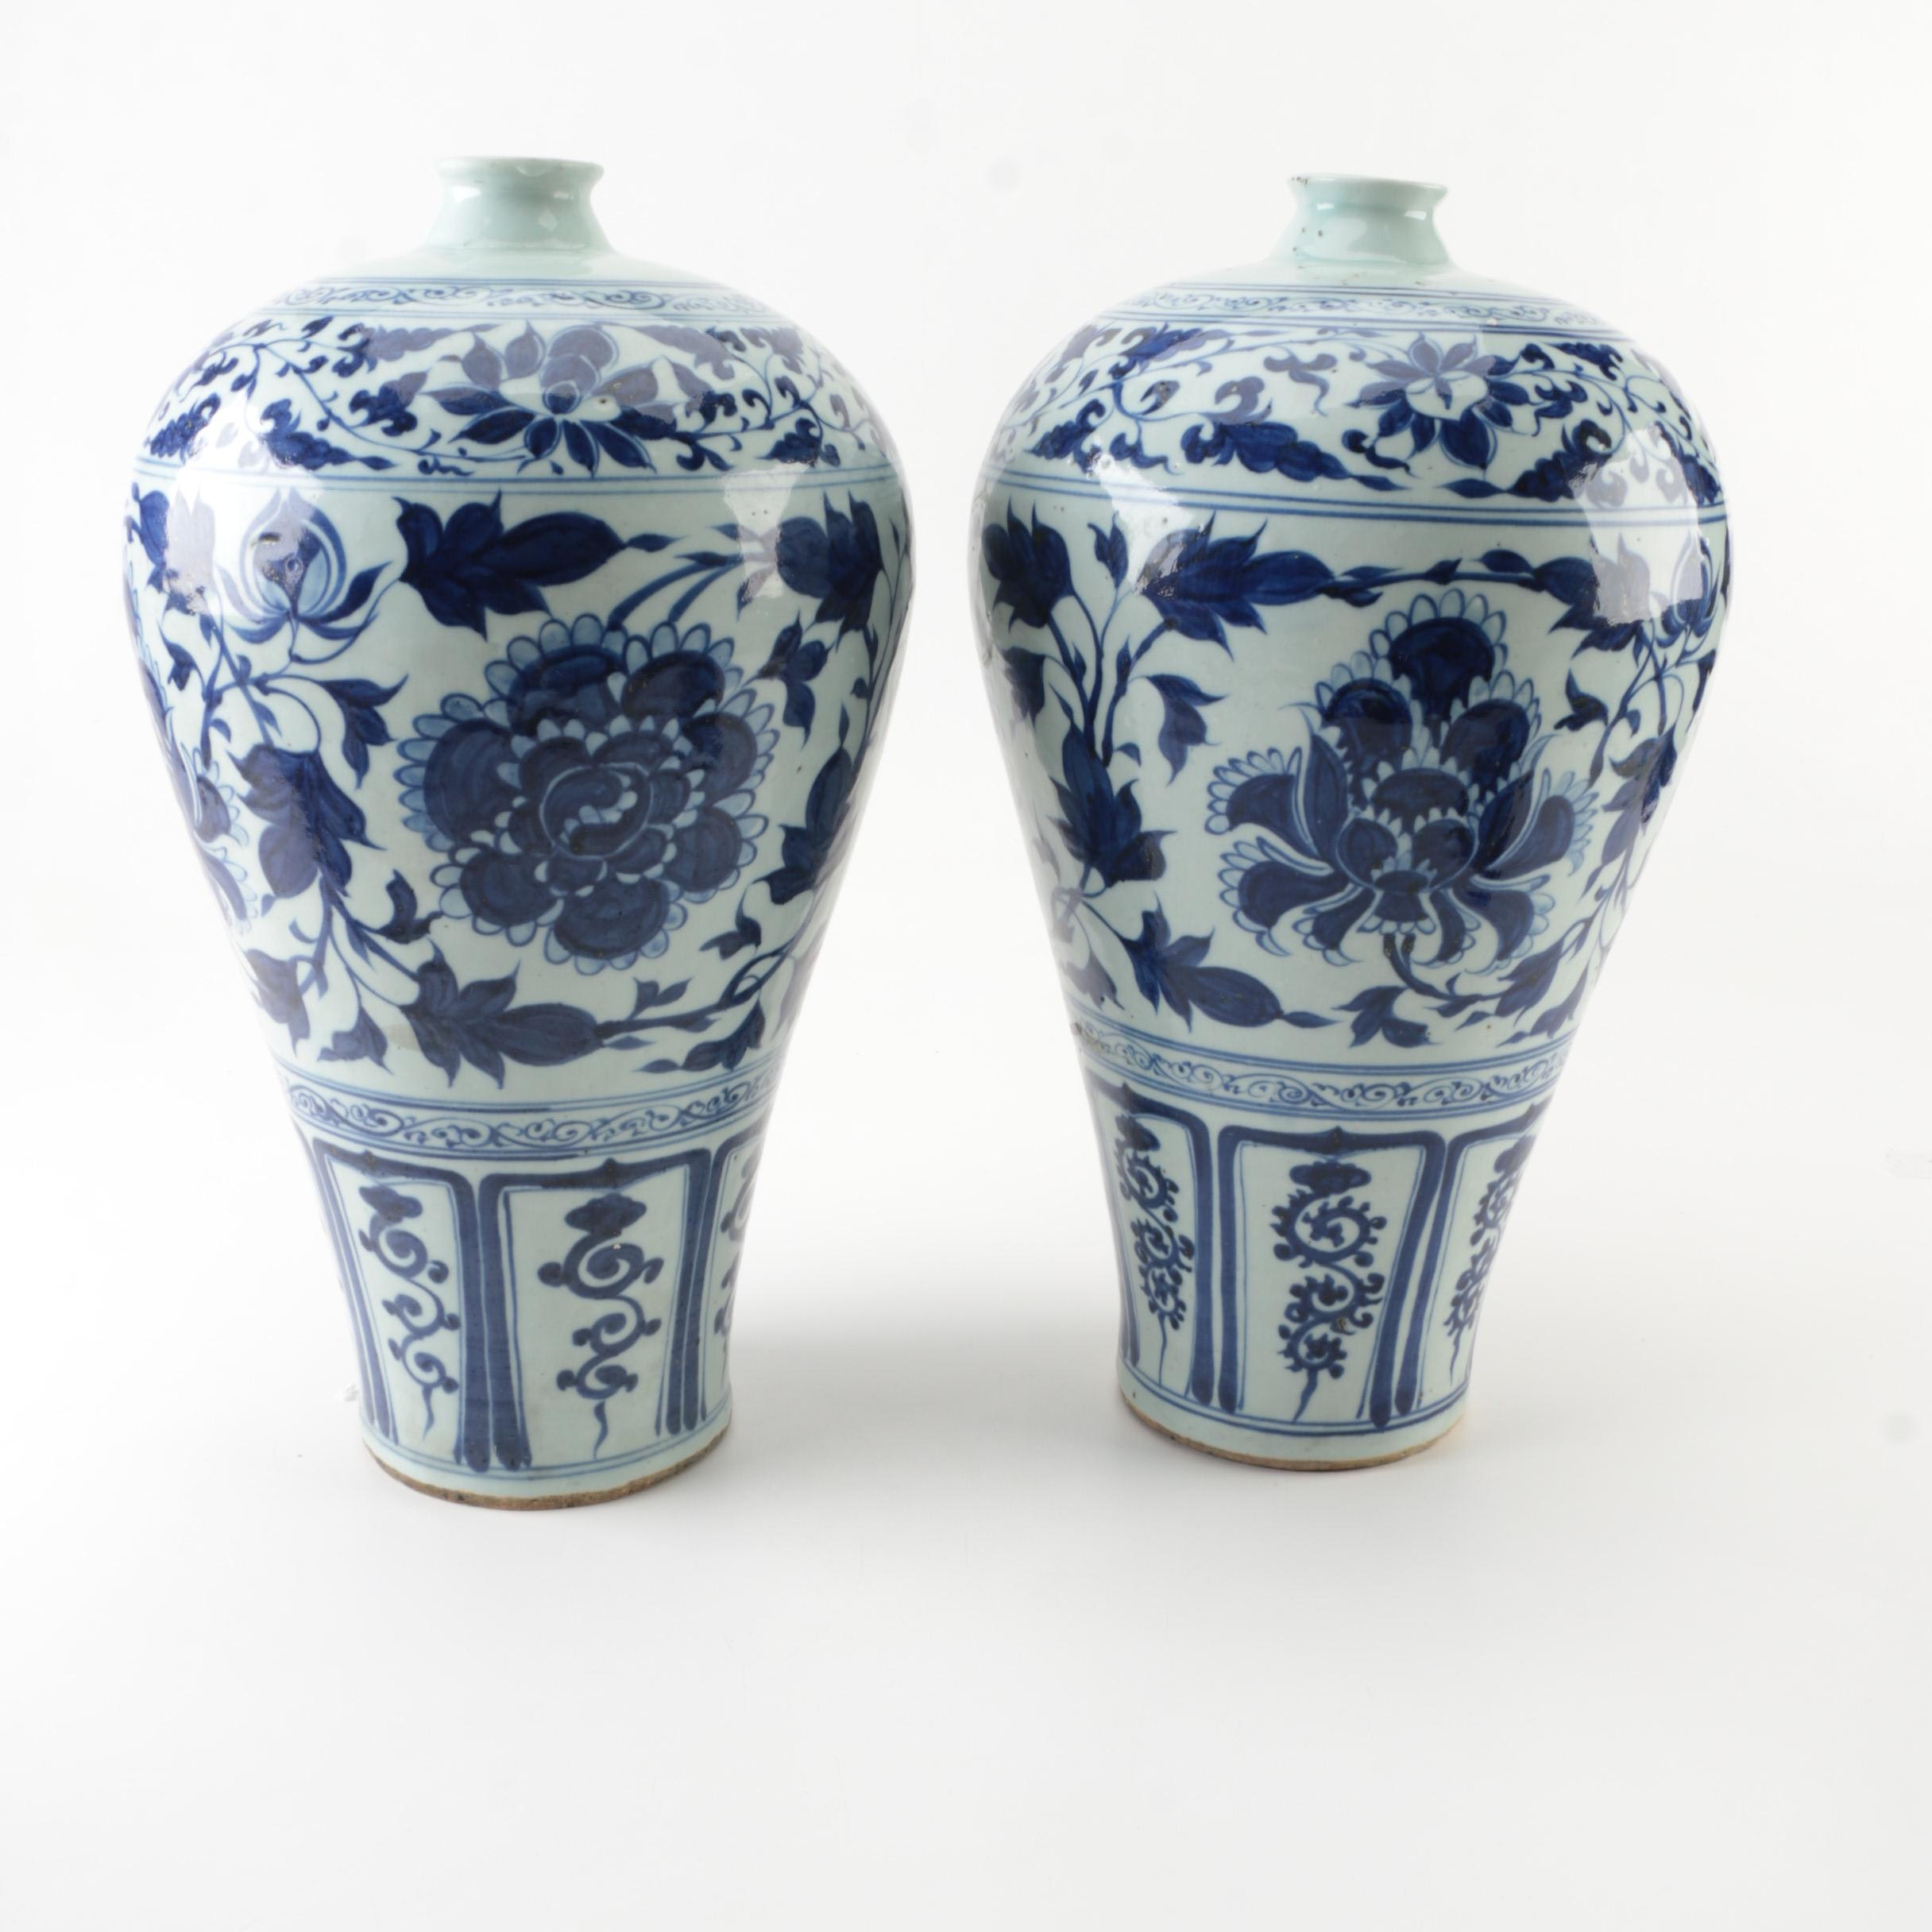 Blue and White Ceramic Urns